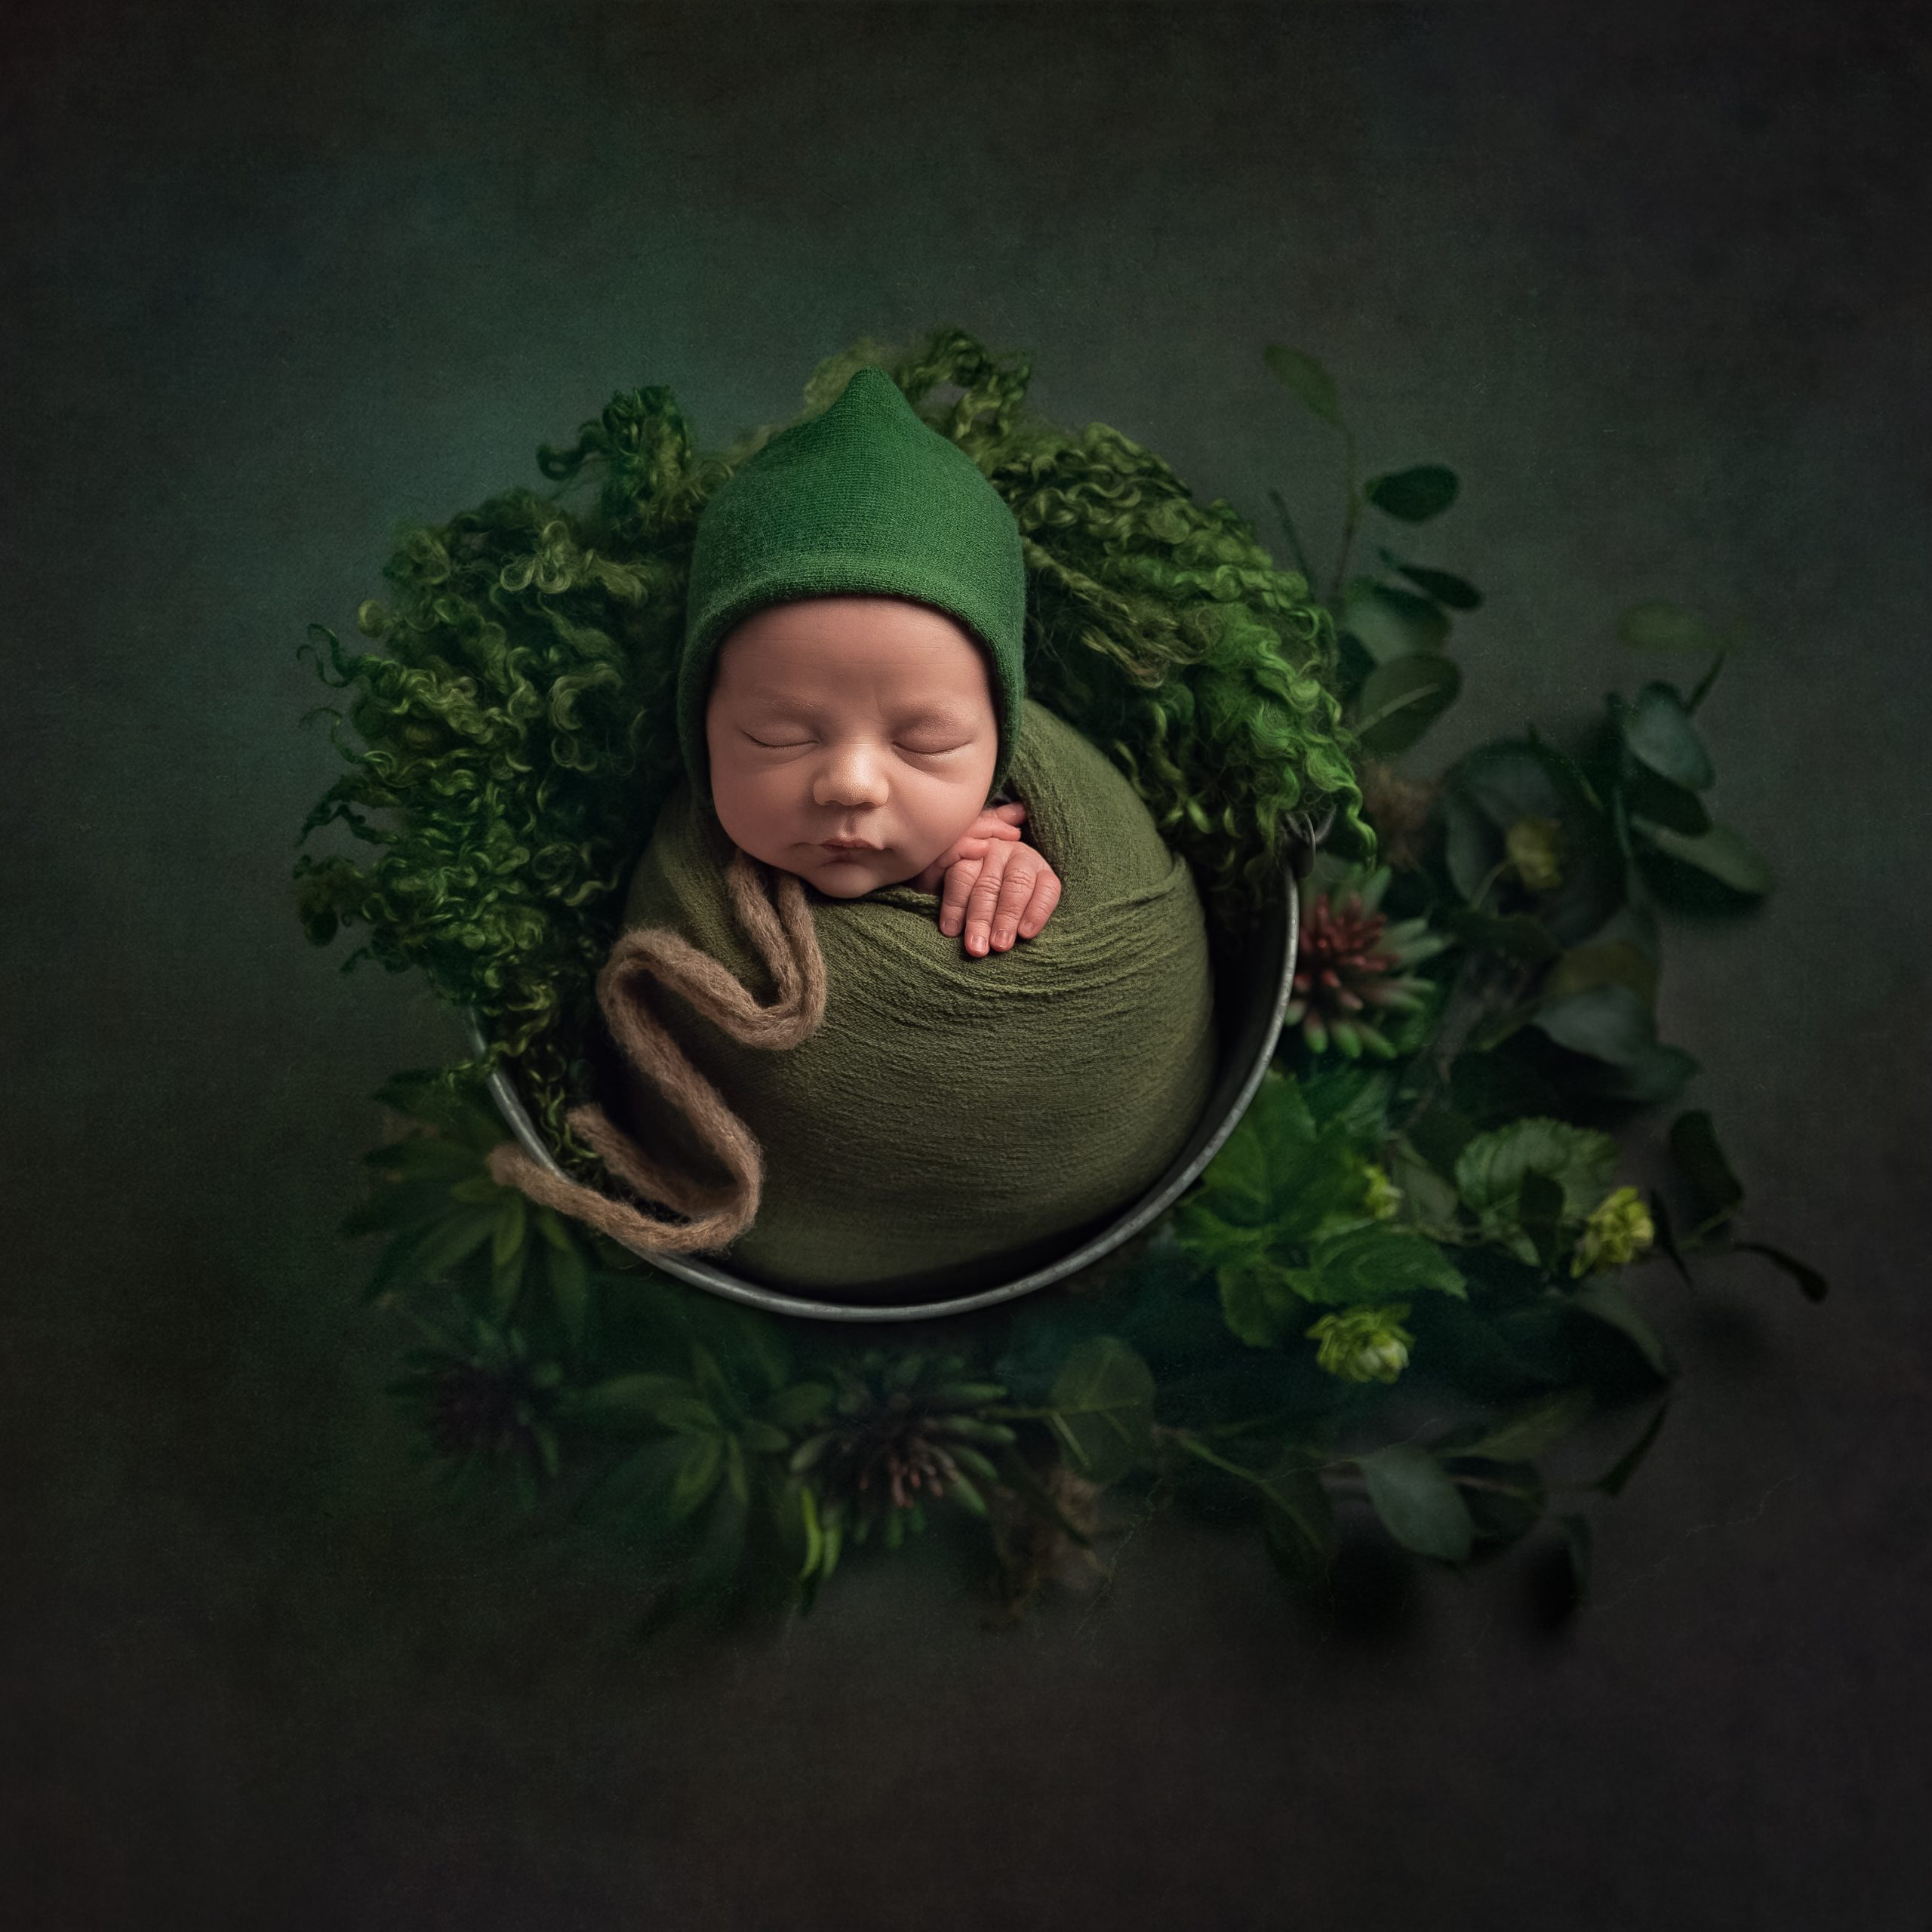 Newborn baby in a bucket with succulents as part of my Master Craftsman in Newborn Photography panel by award winning photographer